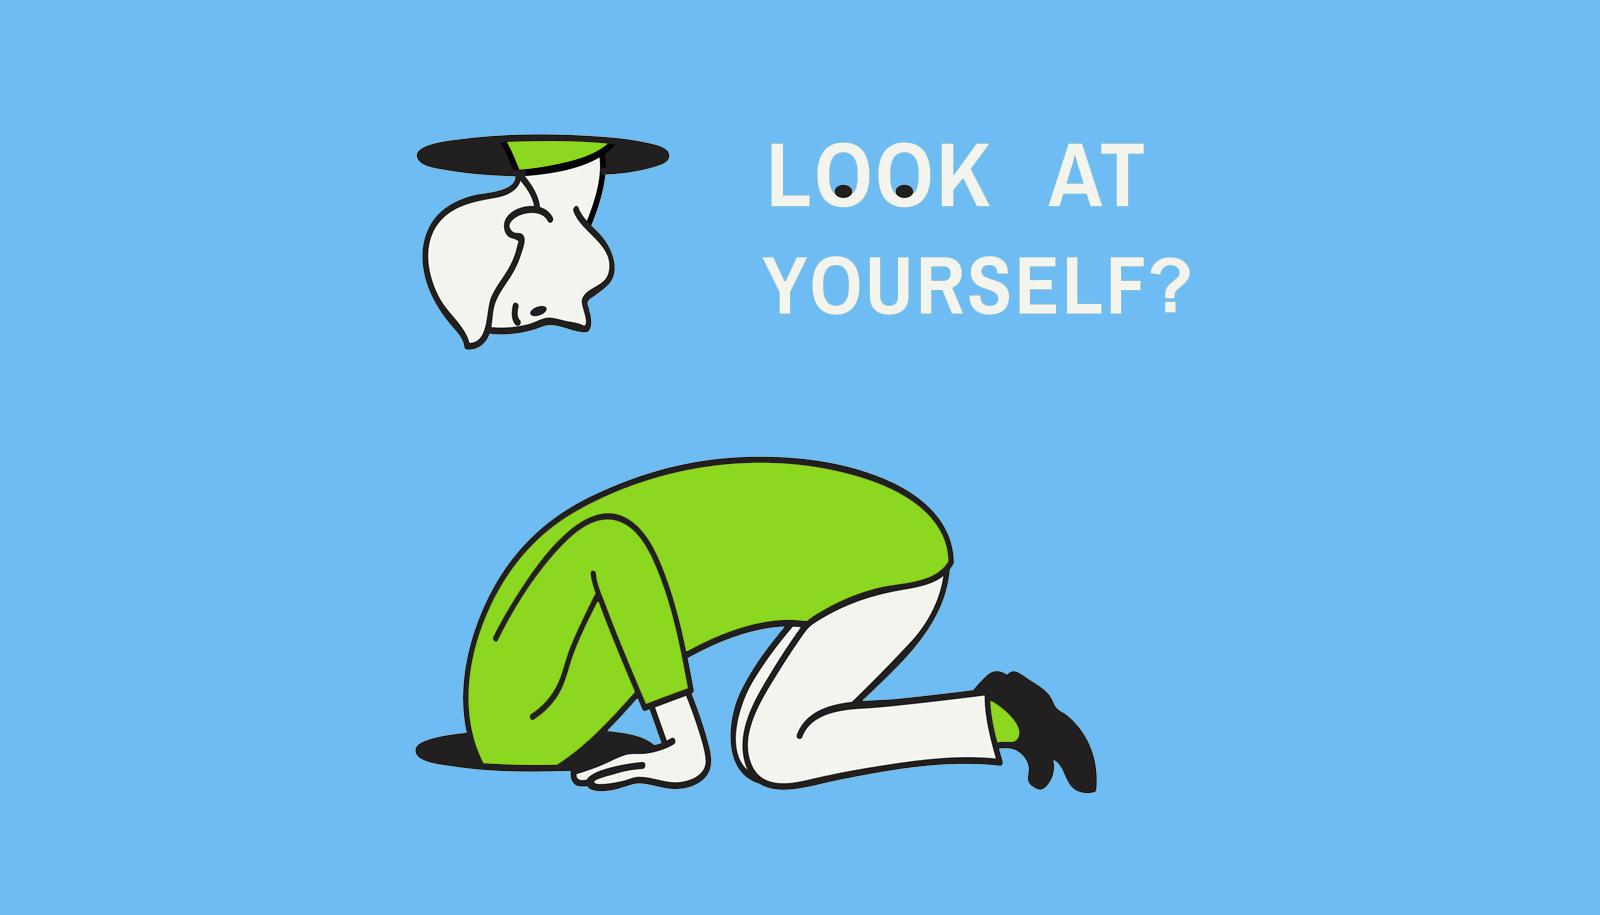 """cartoon person with head in hole says """"look at yourself?"""""""